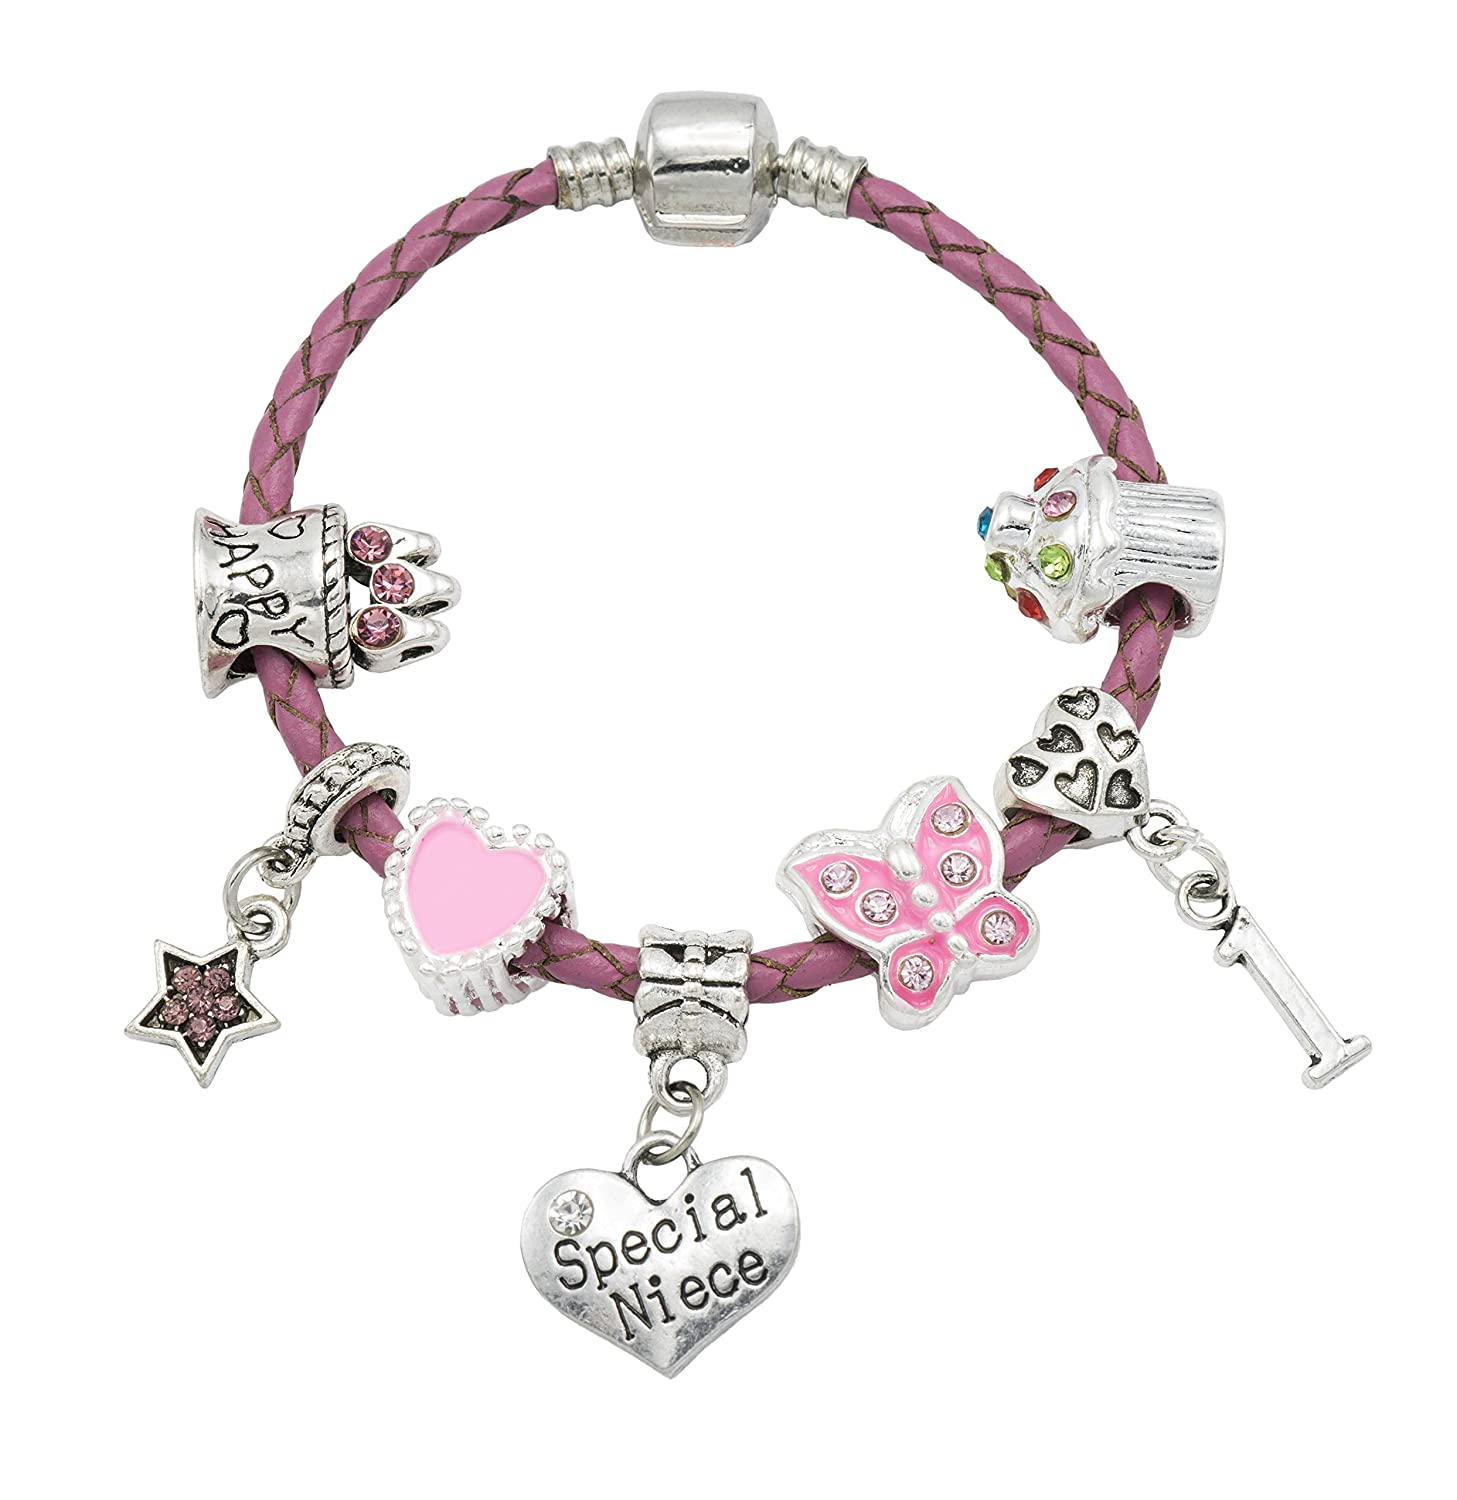 'Special Niece' - Happy 1st Birthday Bracelet For Girls with Gift Box - Girls Jewellery Jewellery Hut BRSpecial Niece1-15